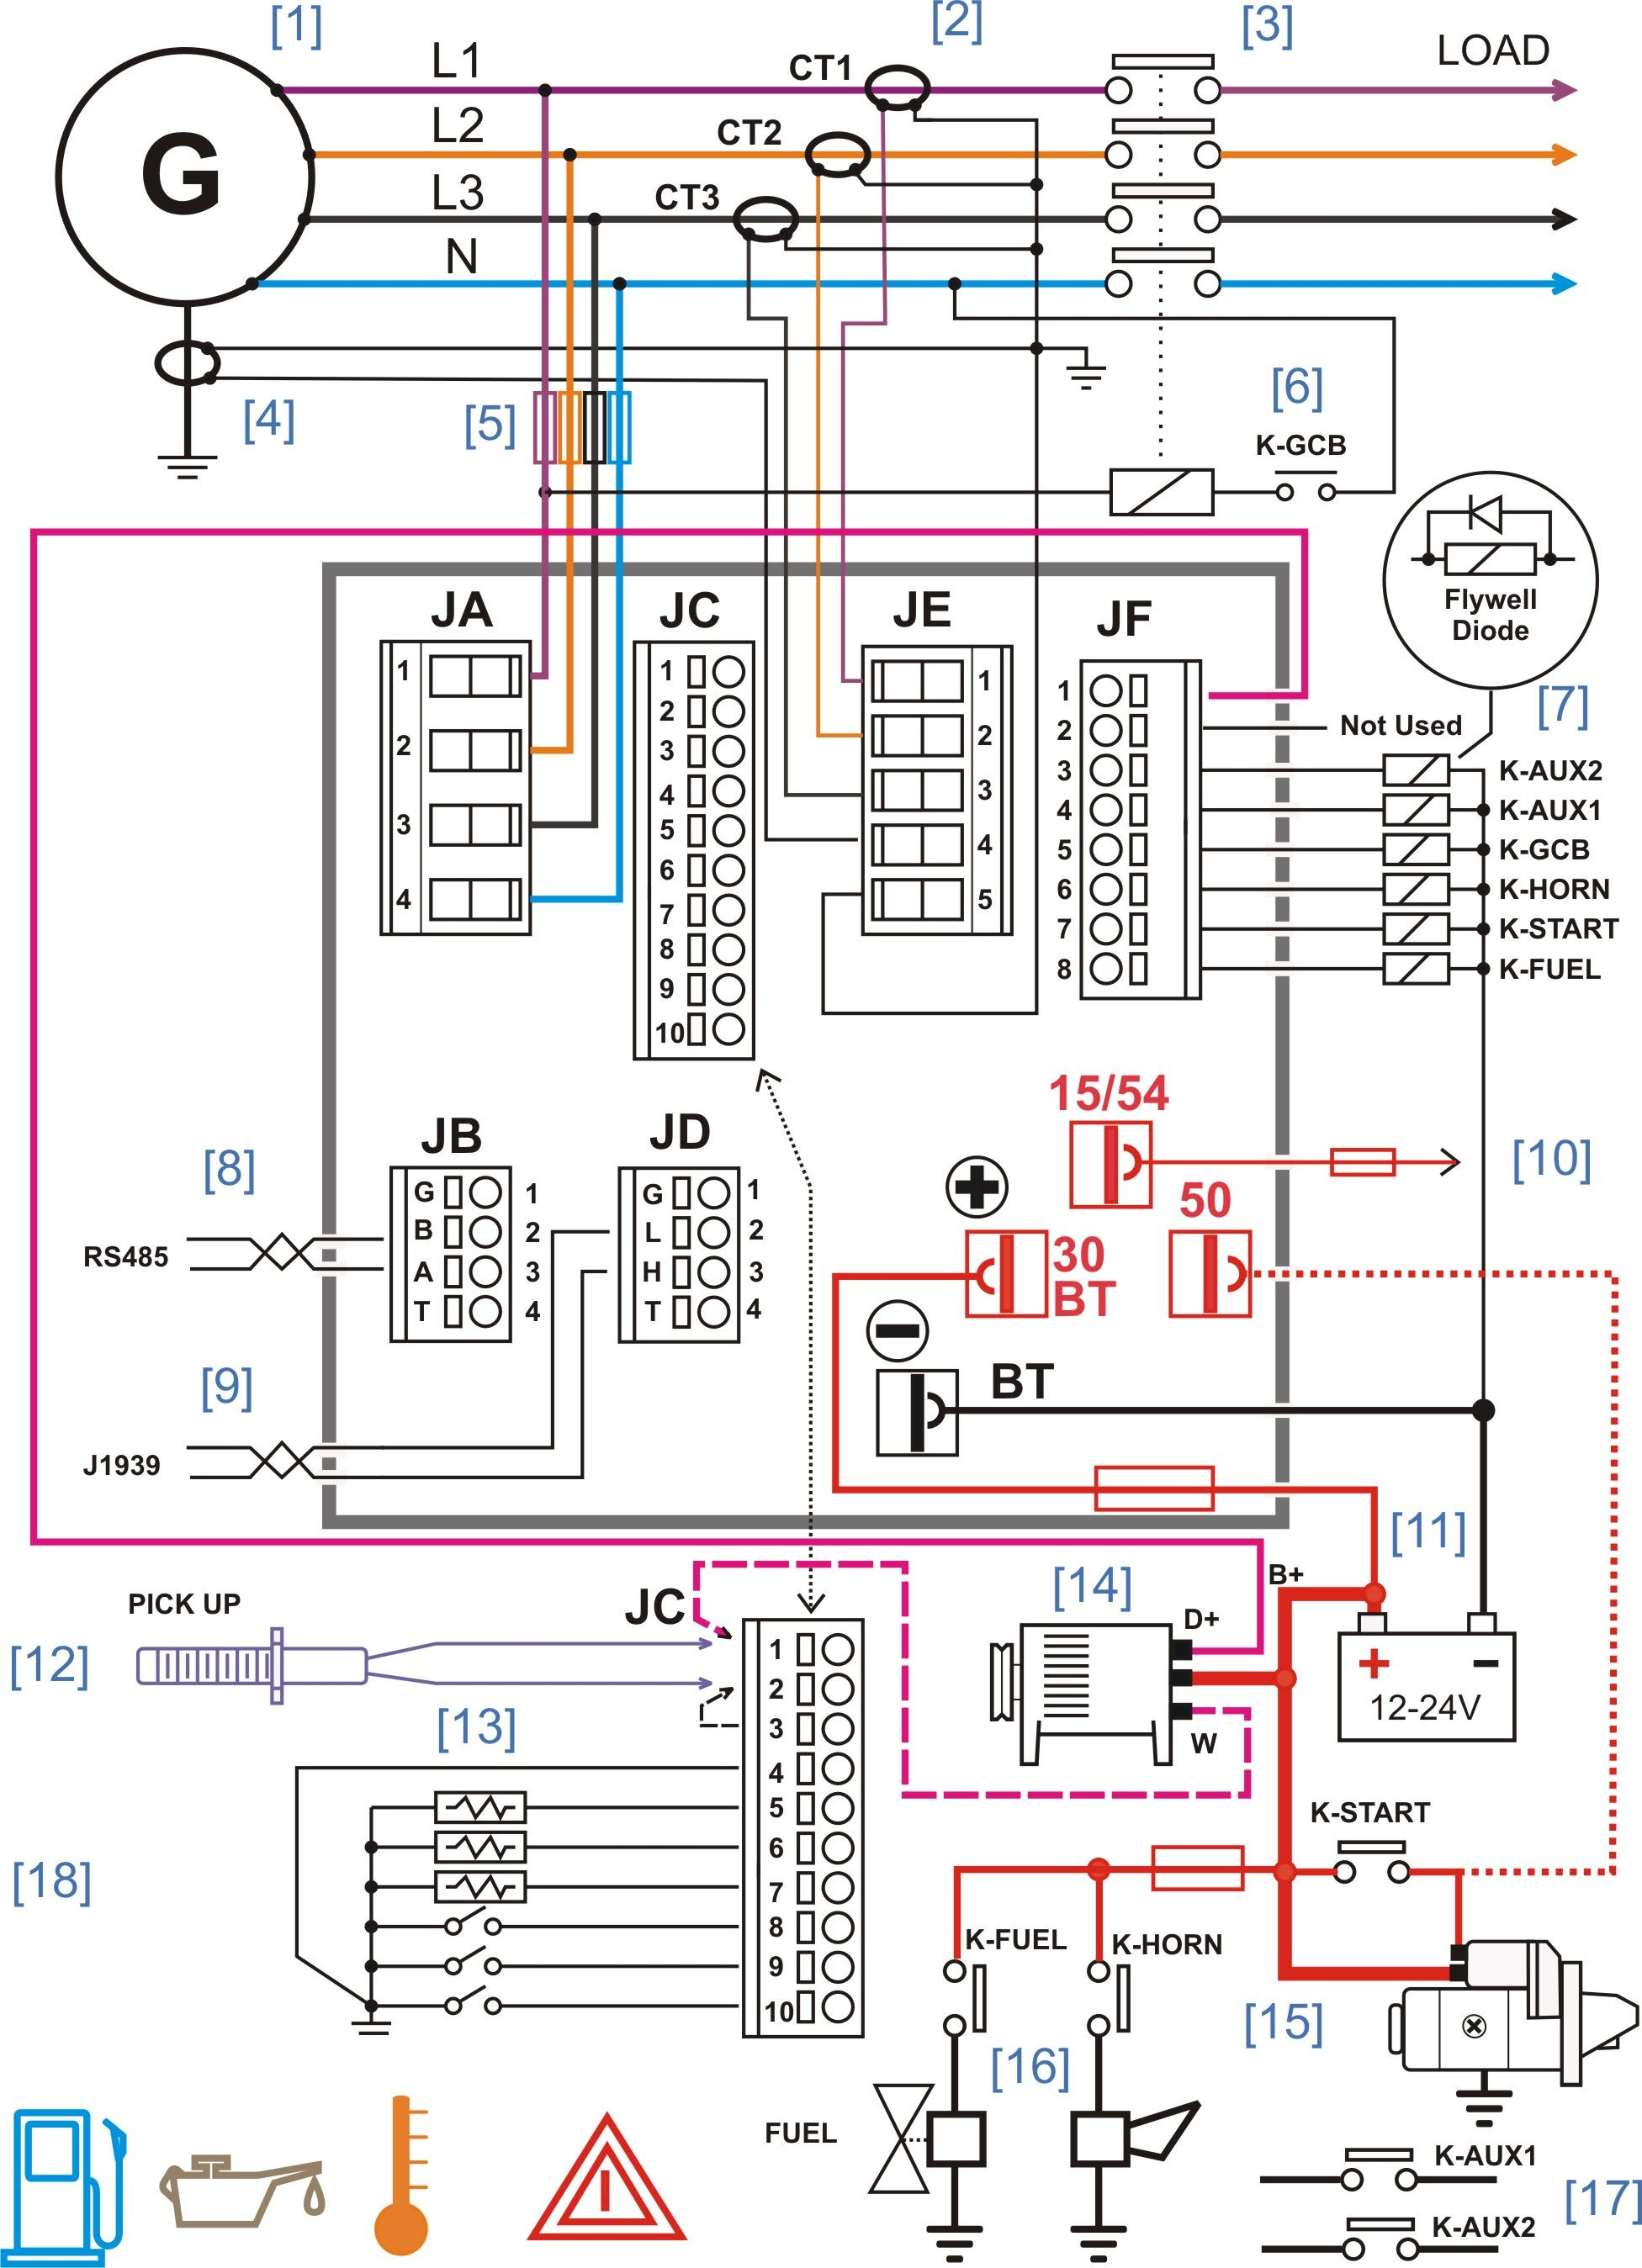 DIAGRAM] Meyer Control Wiring Diagram FULL Version HD Quality Wiring Diagram  - DIAGRAMOFADNS.NUITDEBOUTAIX.FRdiagramofadns.nuitdeboutaix.fr